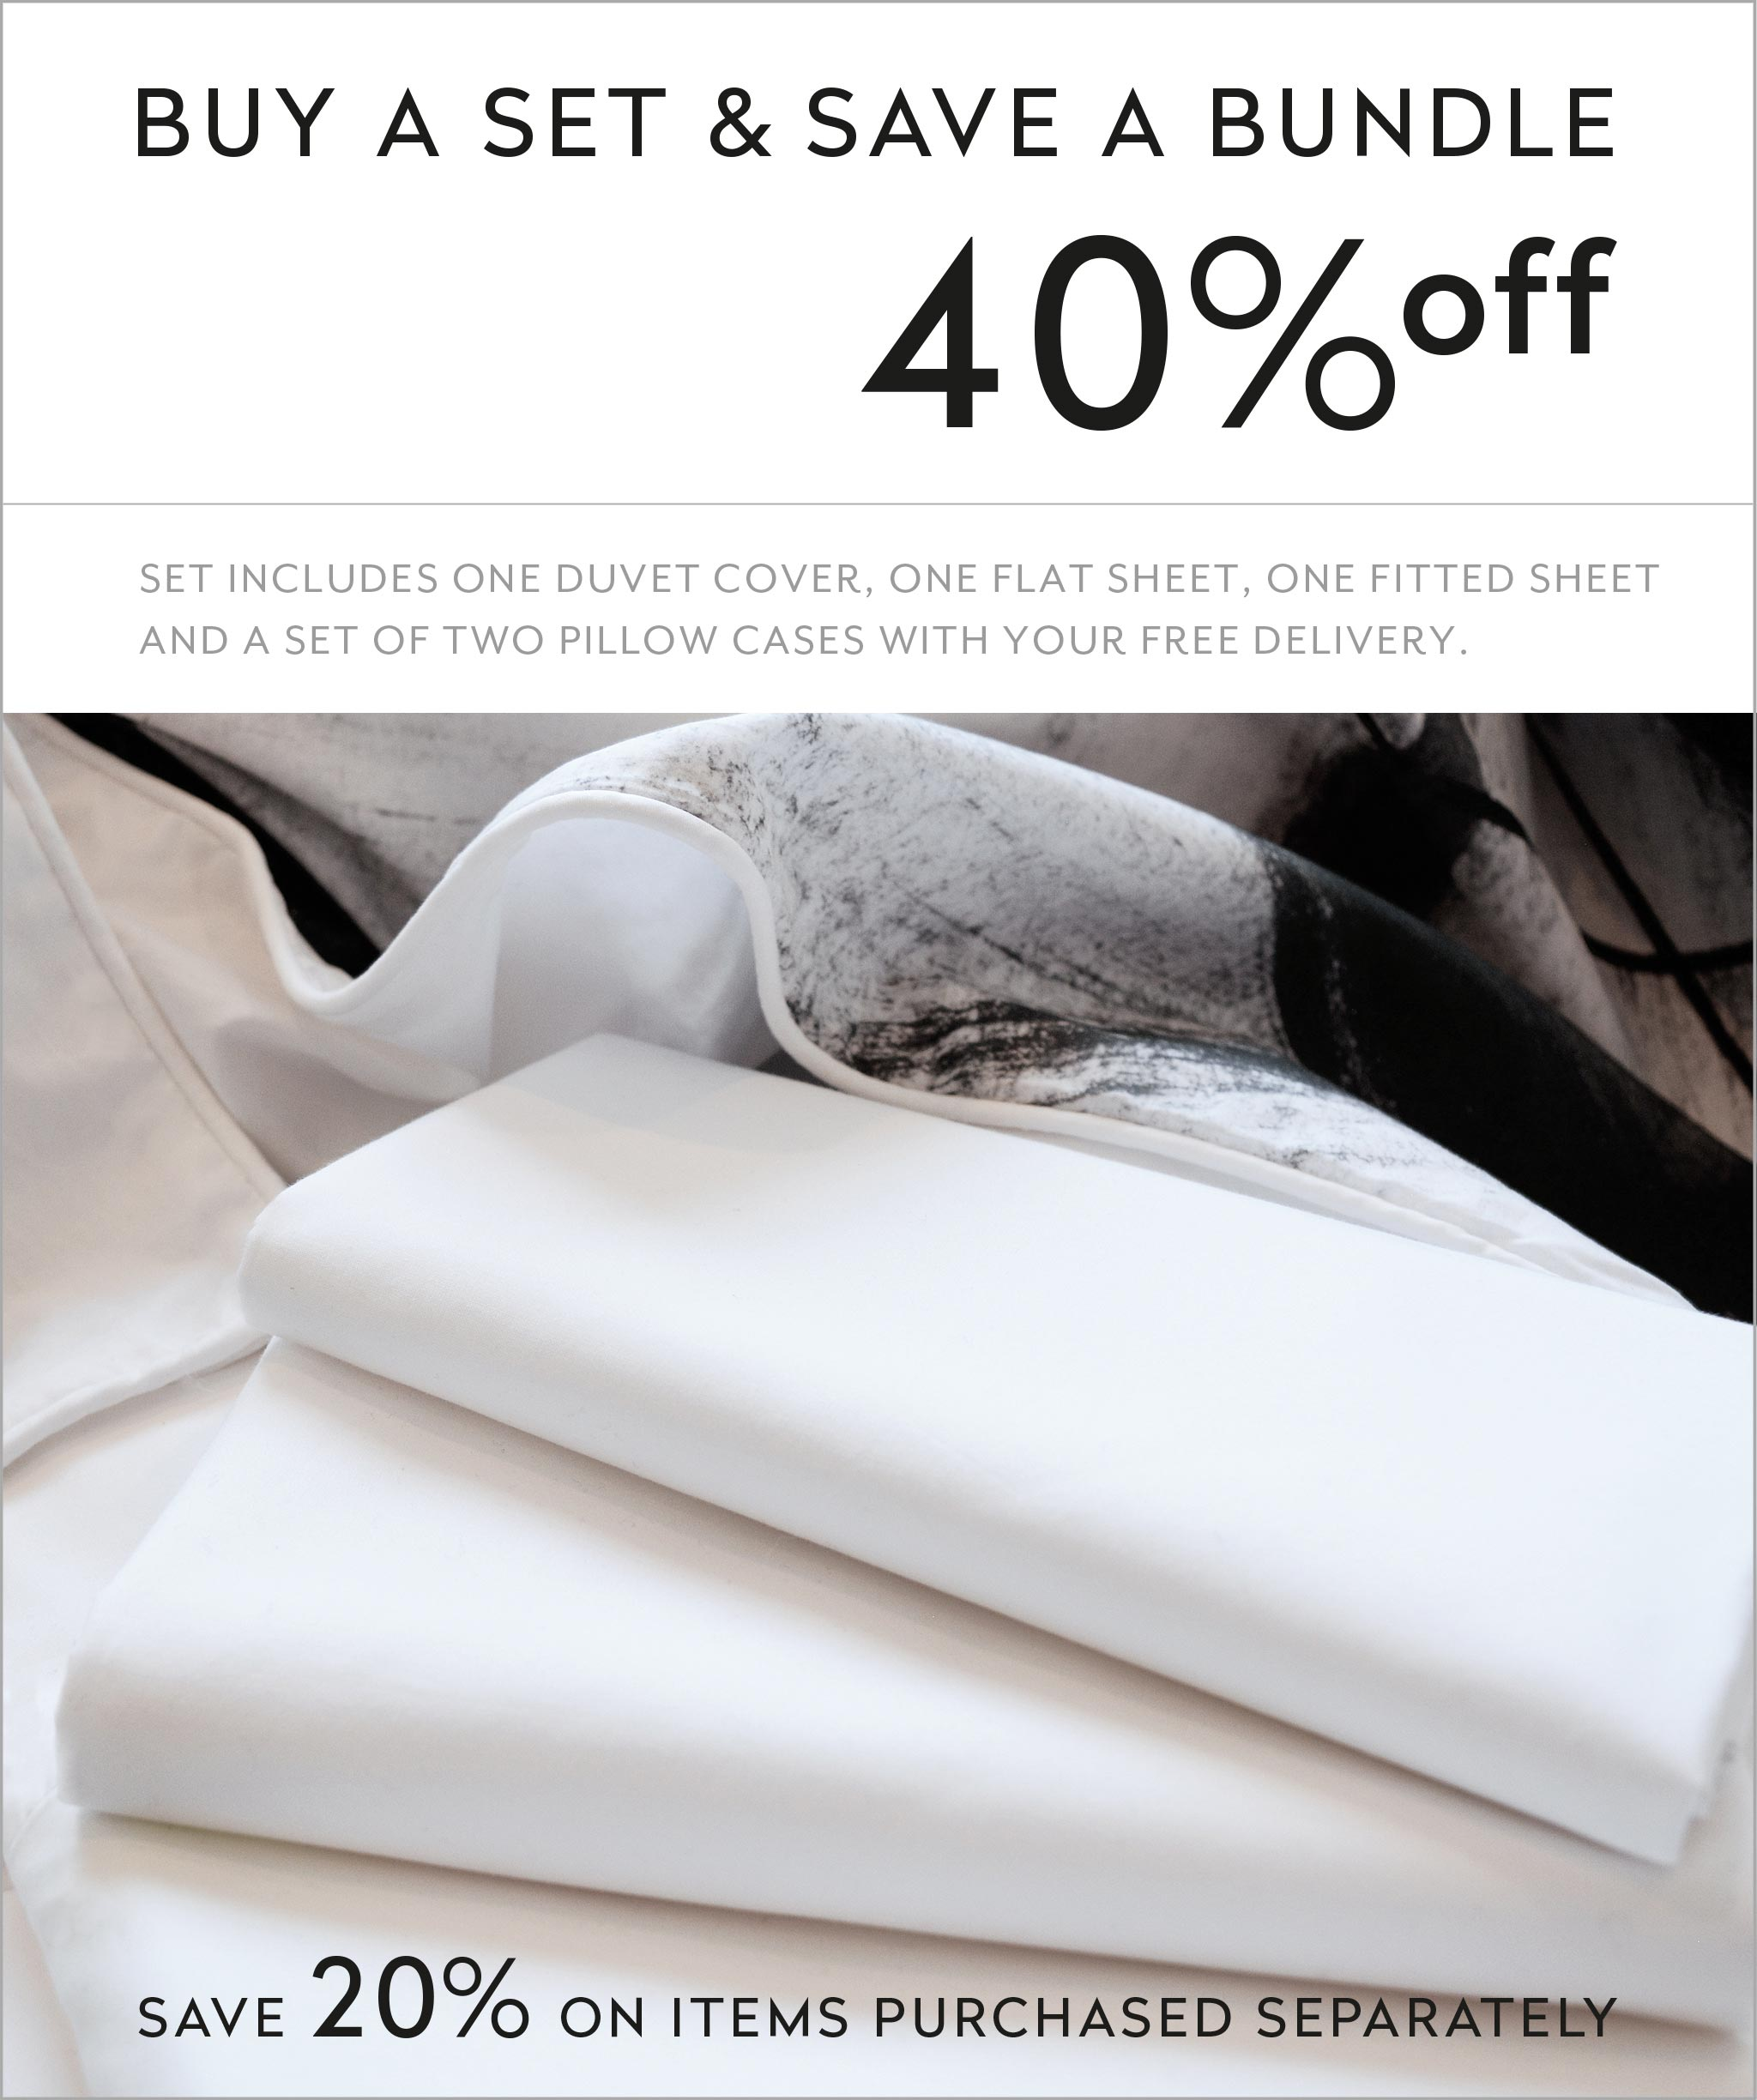 ZayZay-luxury-linen-set-save-40prcnt-Brambles-duvet-cover-sheets-pillowcase